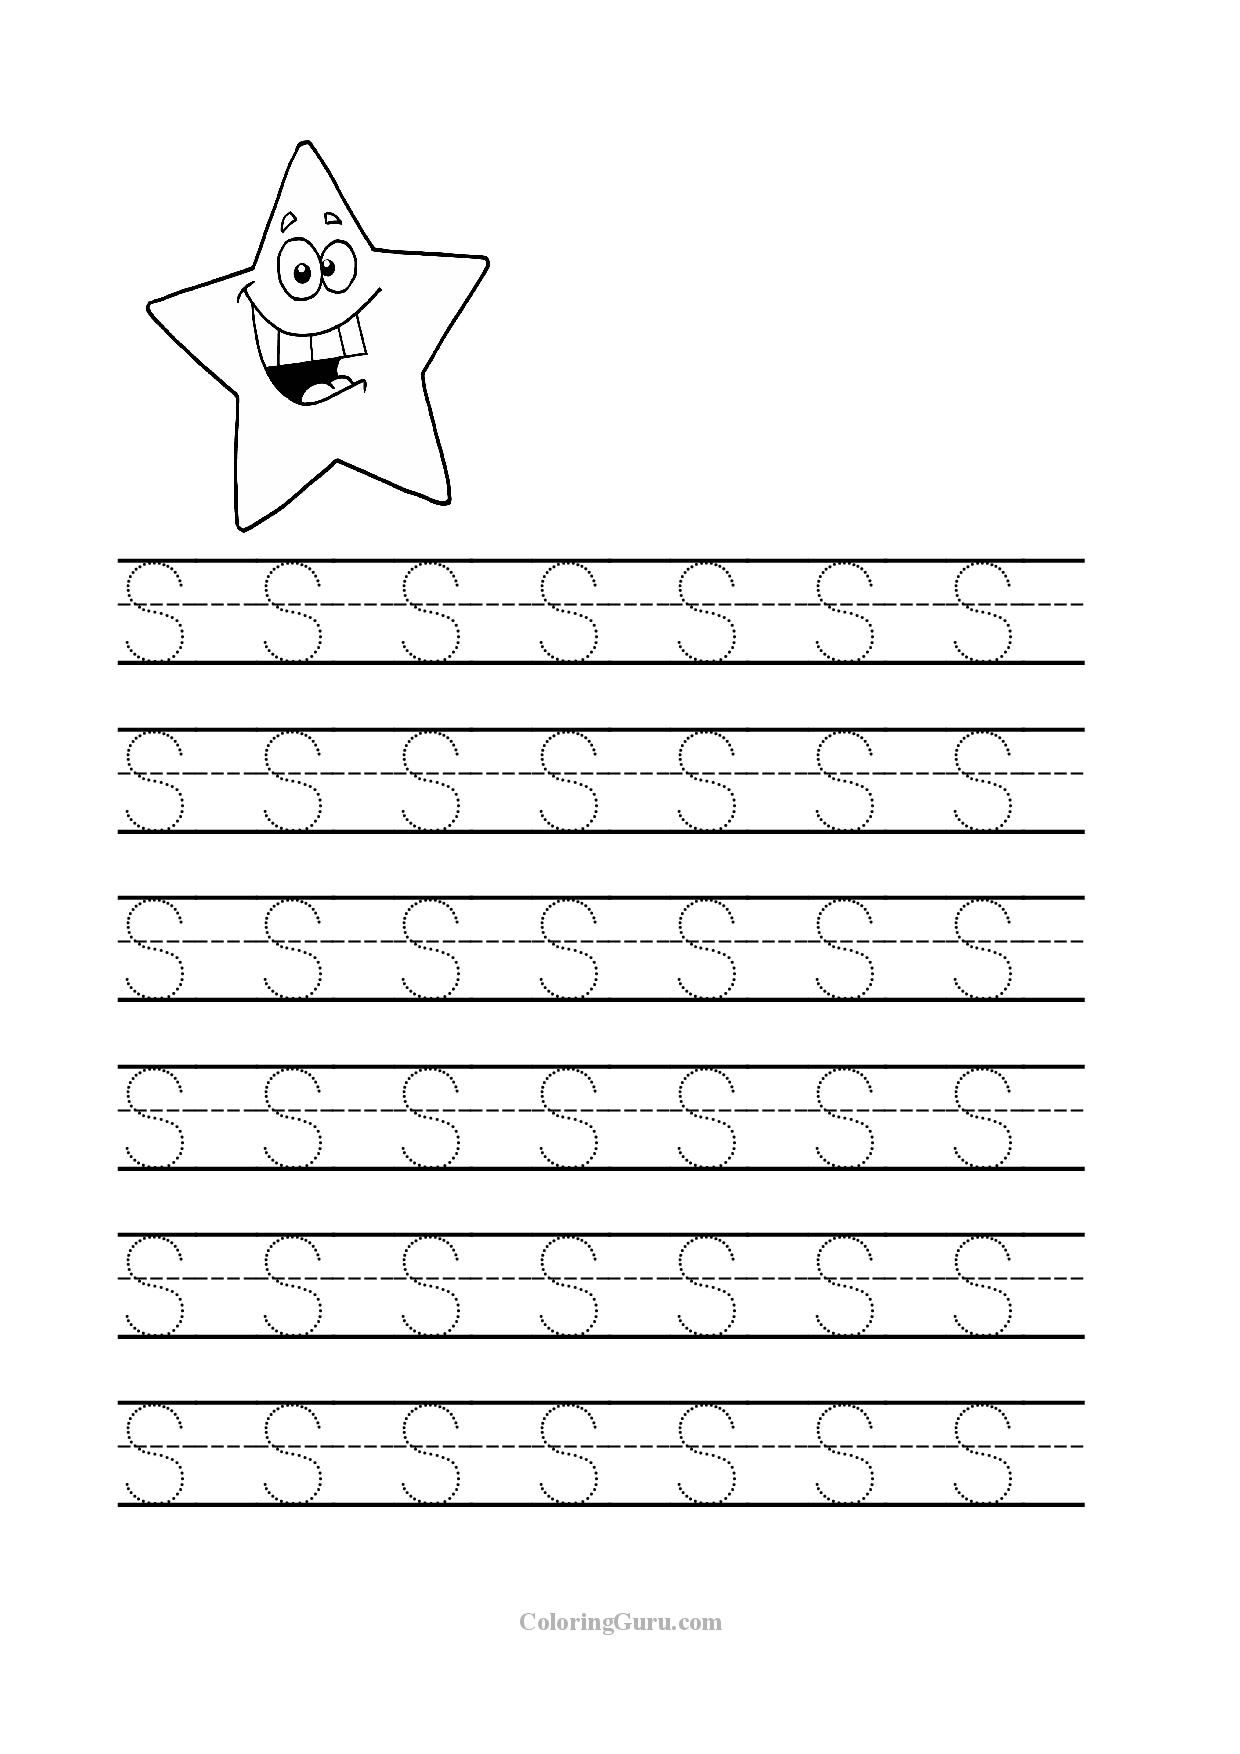 Free Printable Tracing Letter S Worksheets For Preschool inside Free Tracing Letters